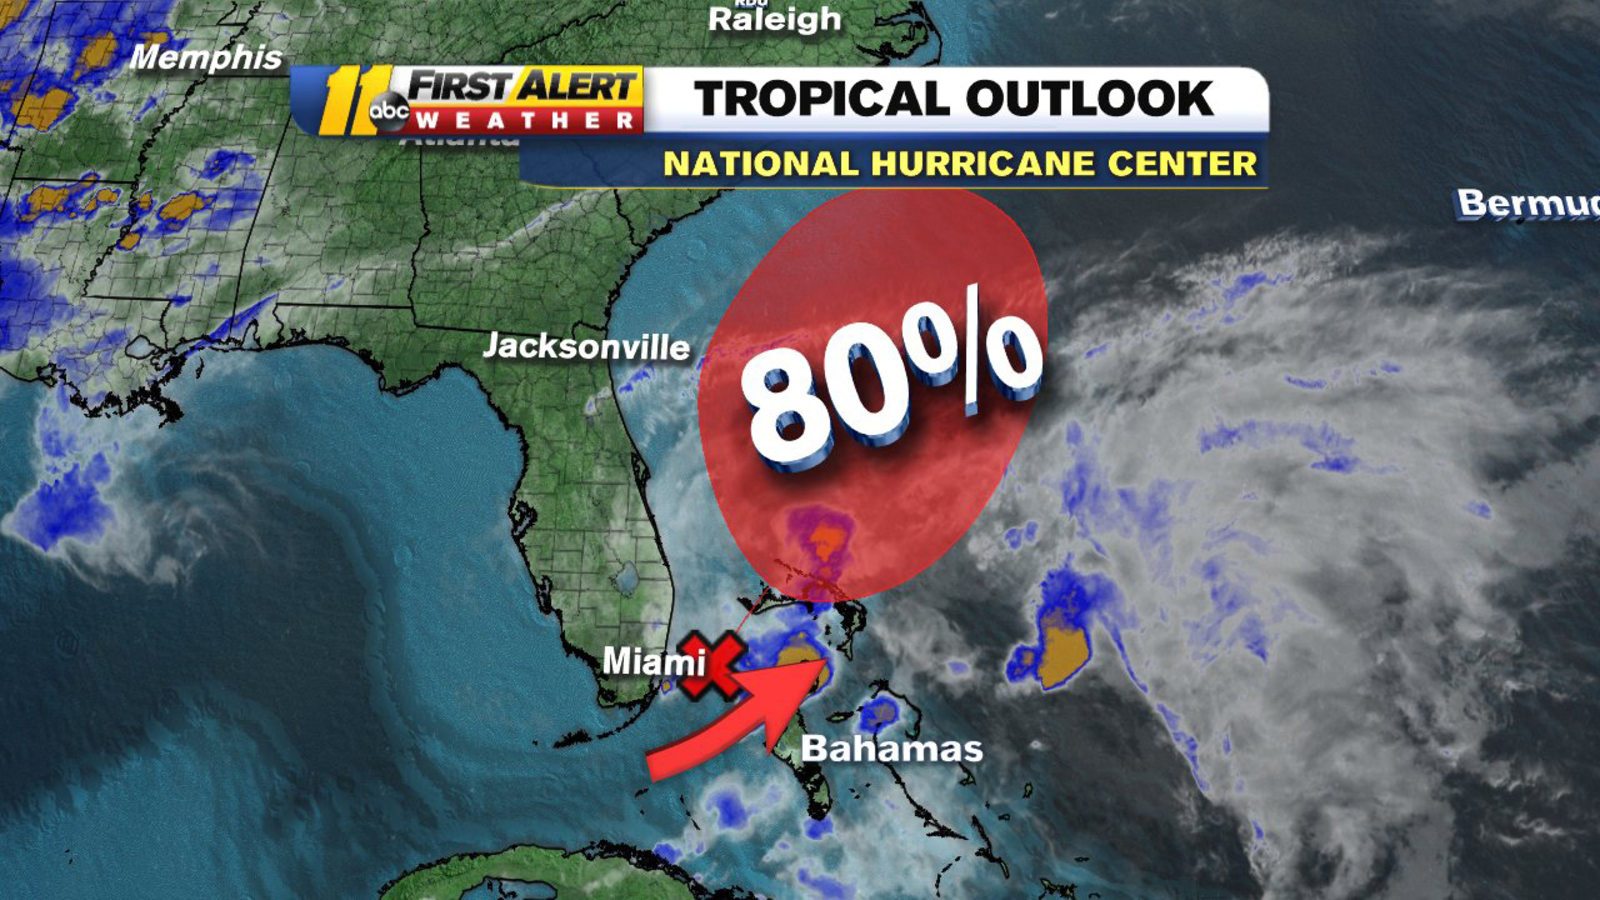 National Hurricane Center Tropical Storm Arthur Has 80 Percent Chance To Form This Weekend Abc11 Raleigh Durham